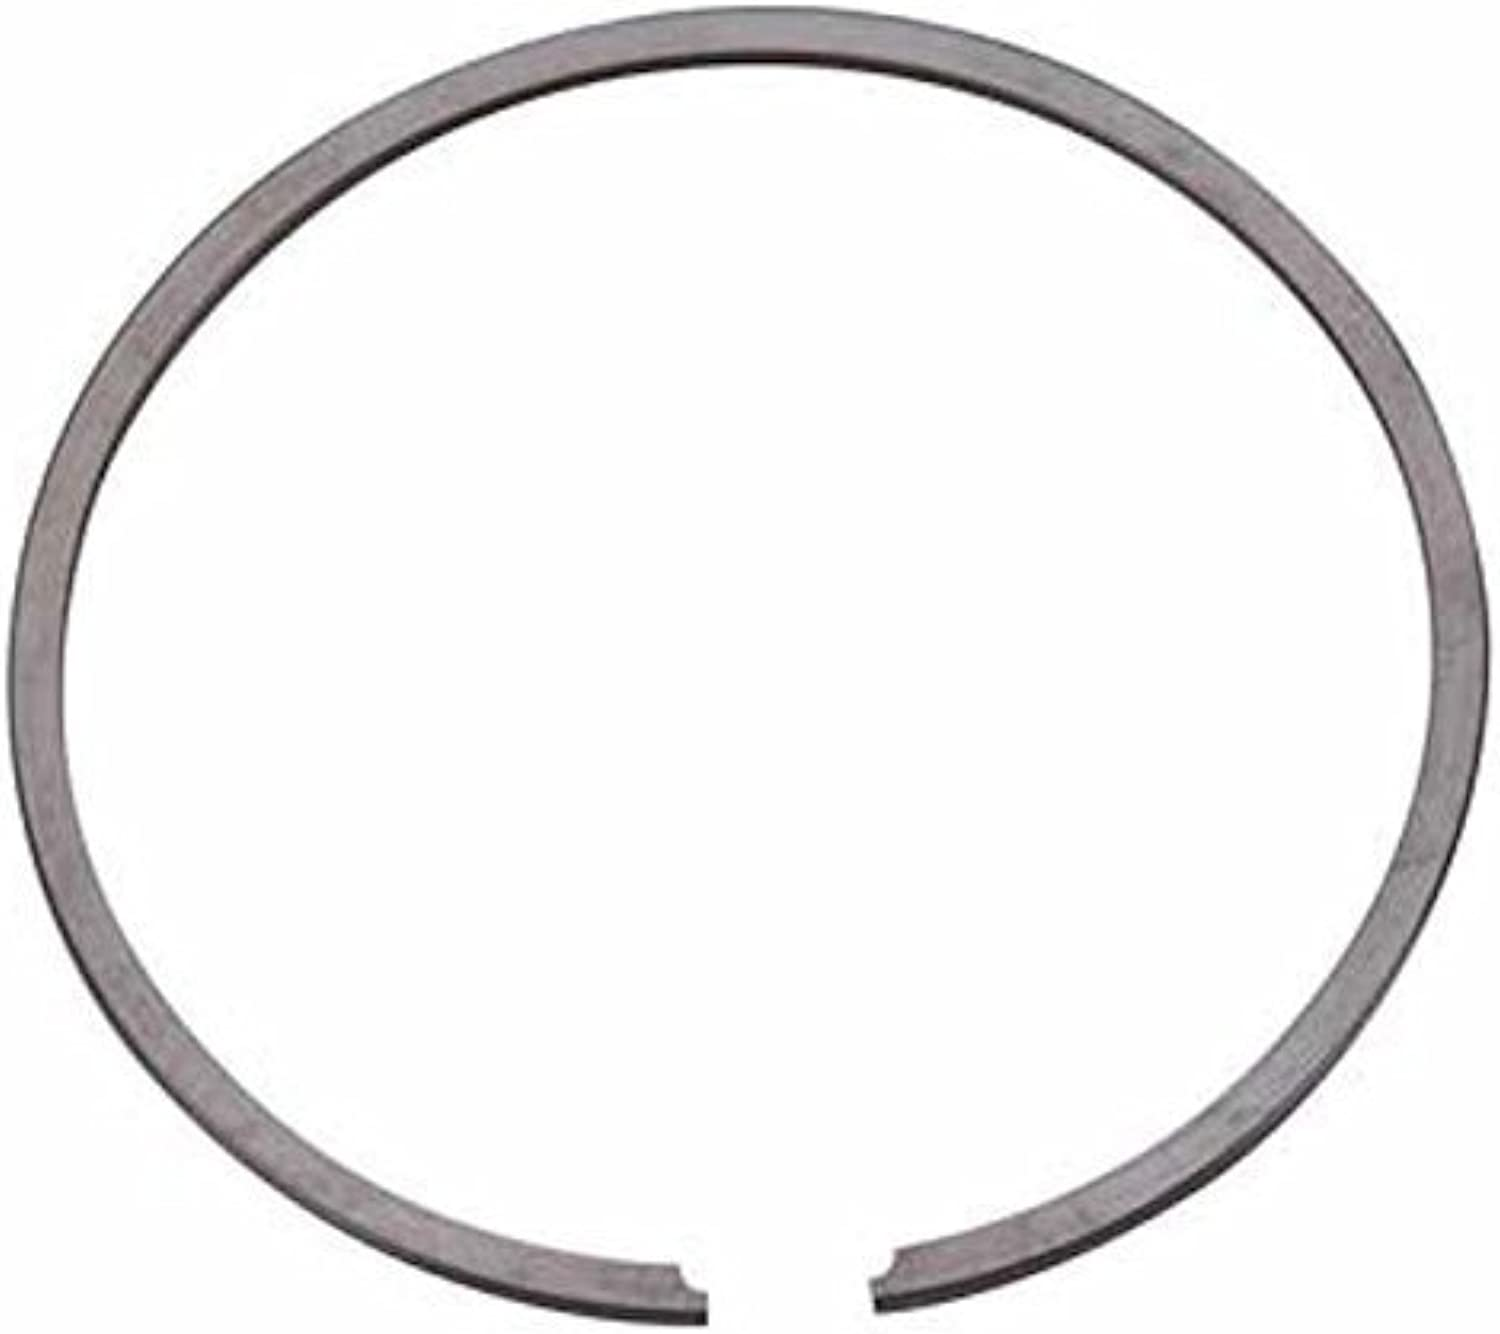 OS Engine 29703400 Piston Ring GT55 by OS Engine